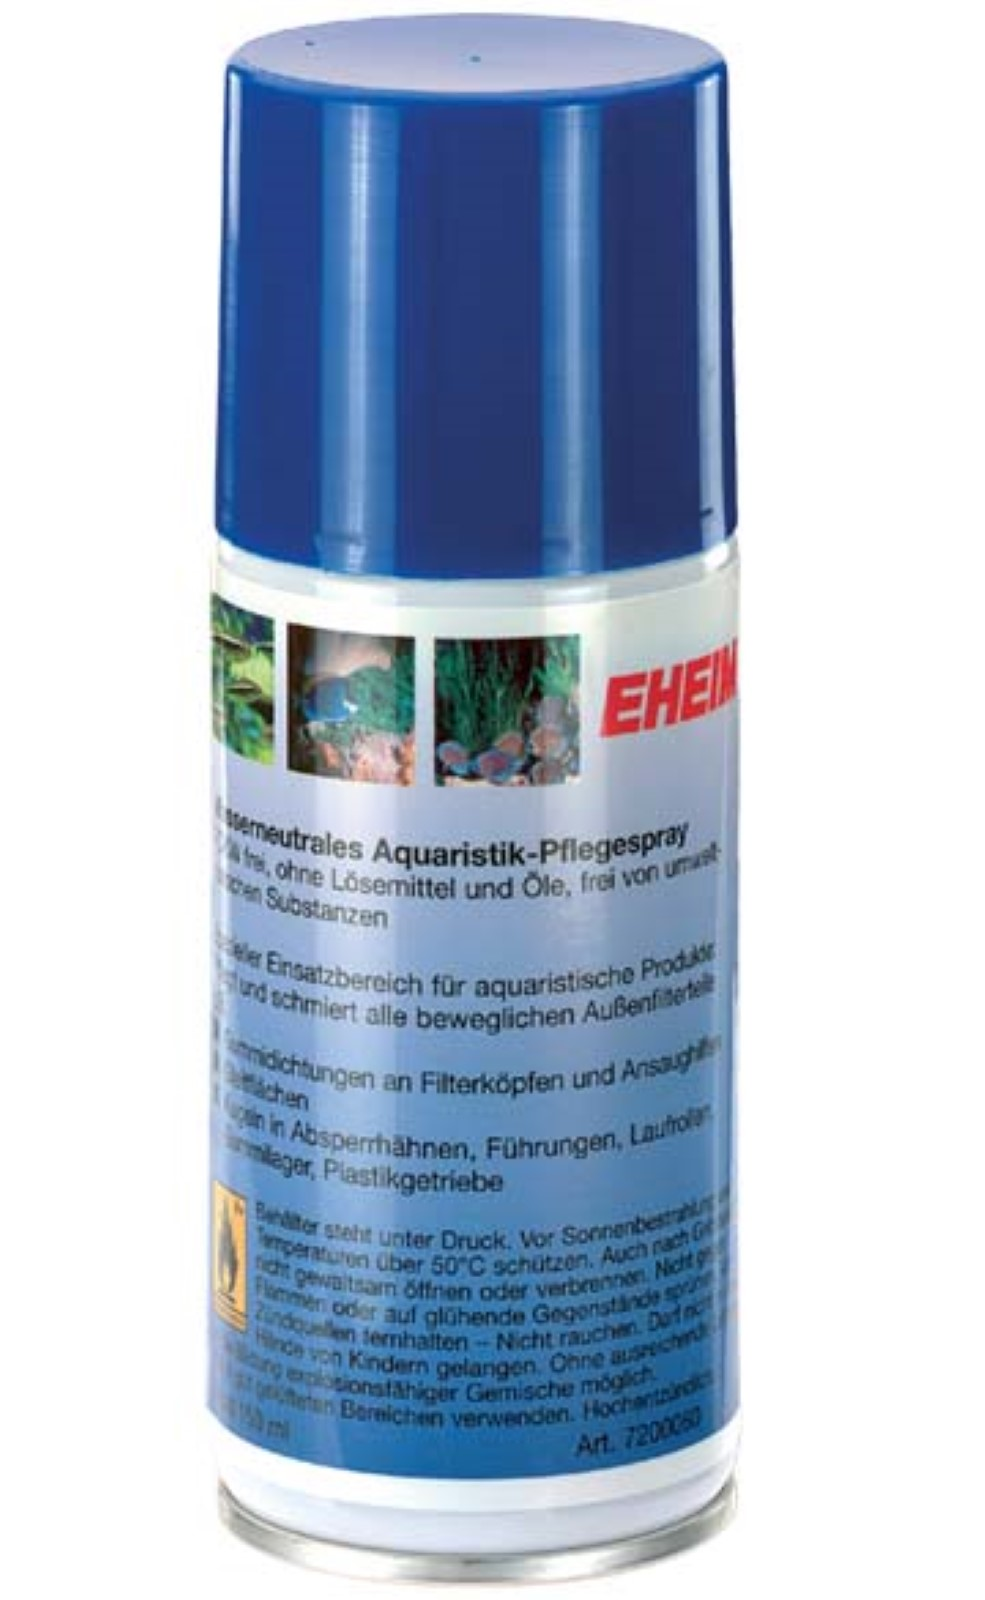 Eheim Aquaristik Pflegespray Aquarium